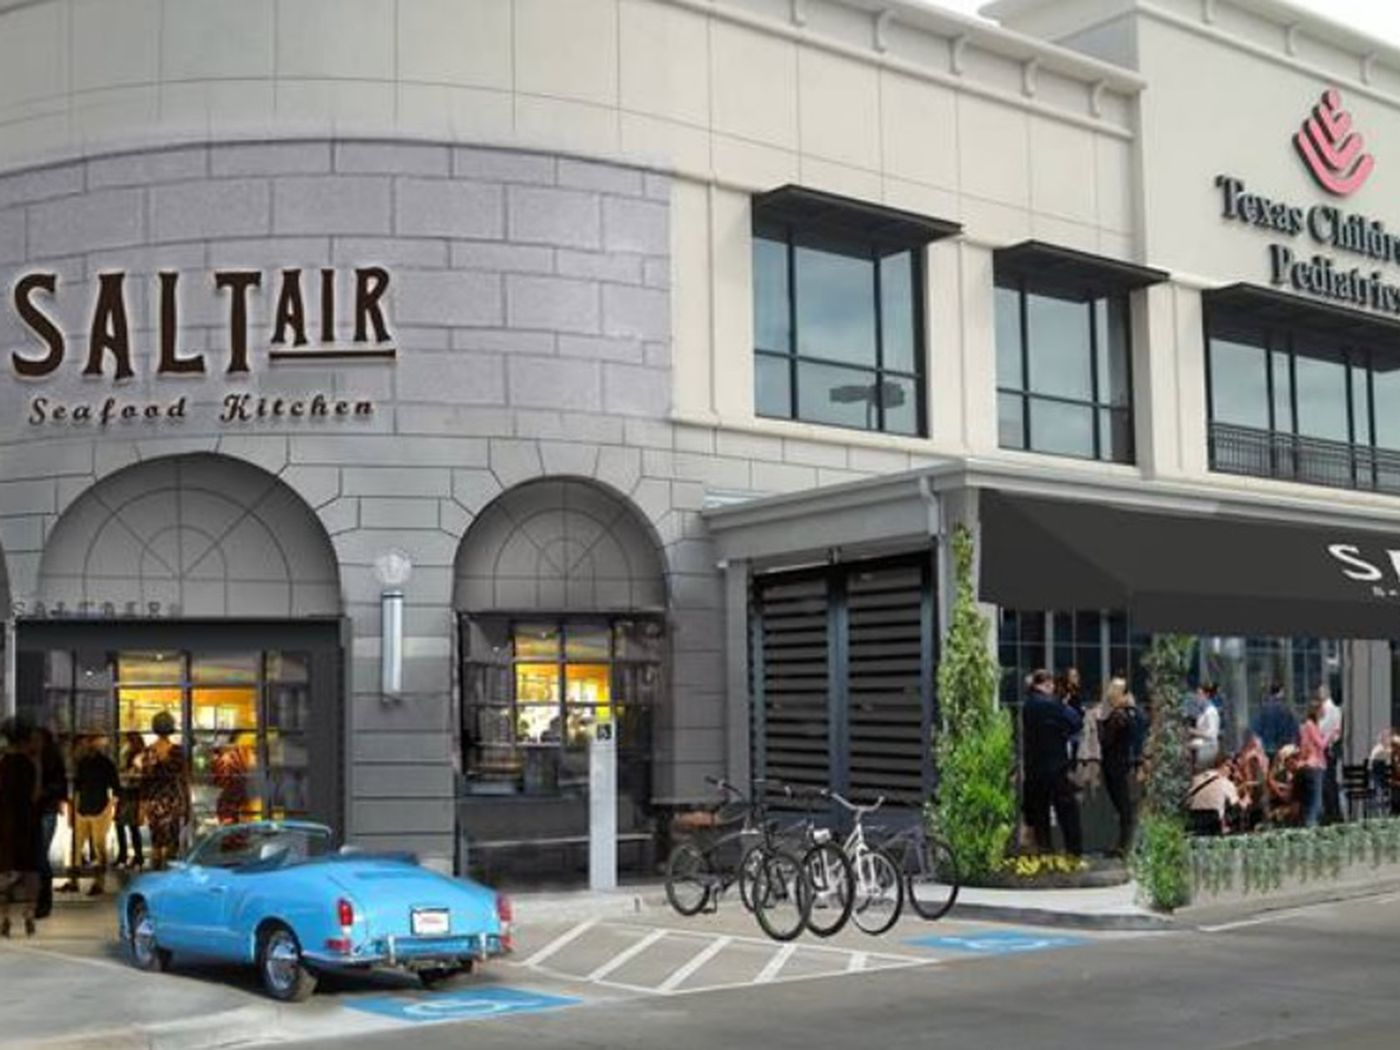 Check Out a Rendering of SaltAir Seafood Kitchen - Eater Houston